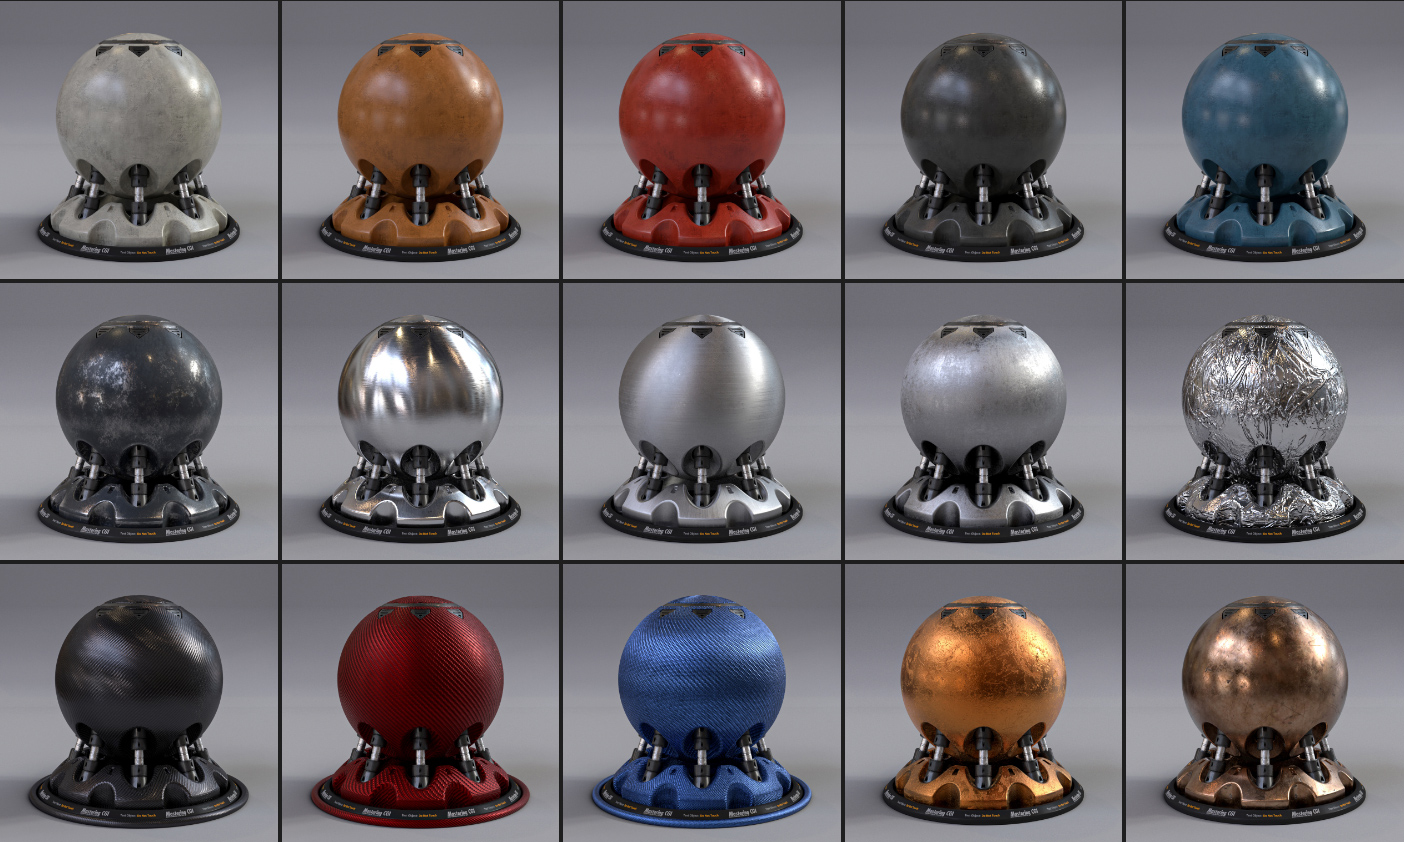 Arnold-material-library-c4d-PBR-textures-C4DToA-MATERIAL-PACK-1-1.jpg